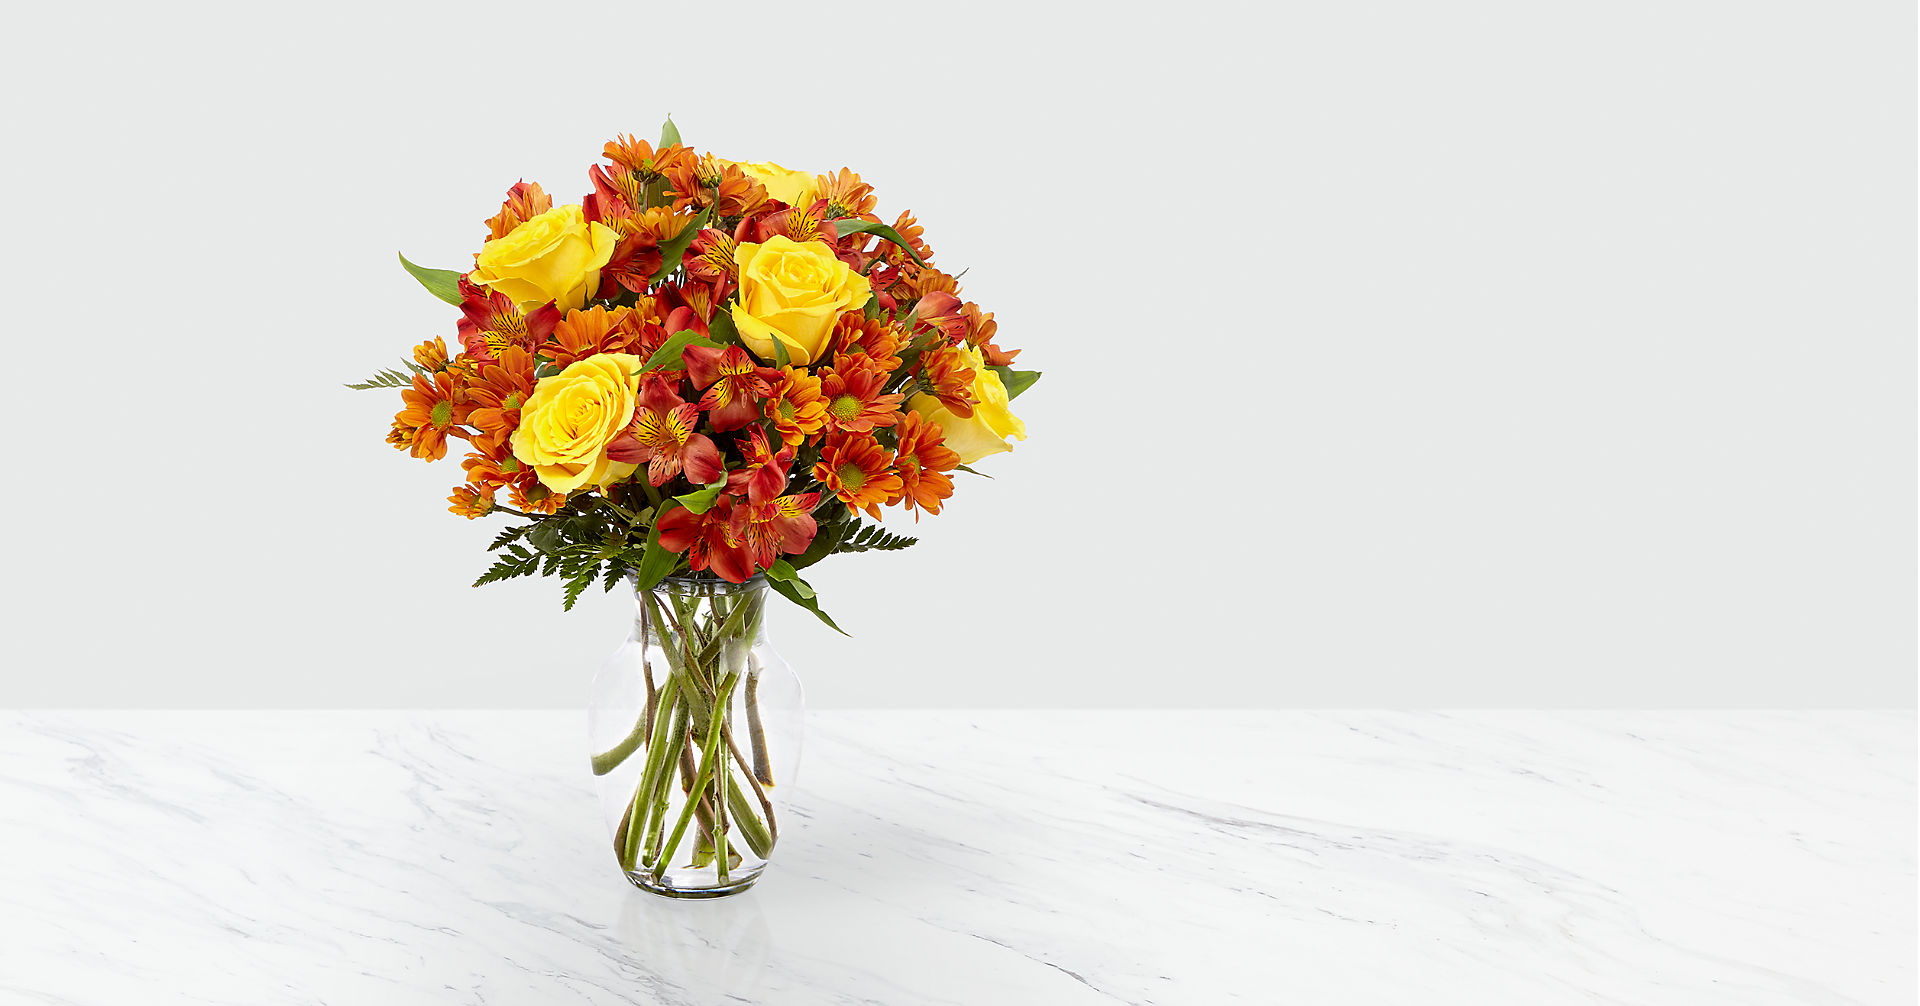 Golden Autumn™ Bouquet - Image 1 Of 2